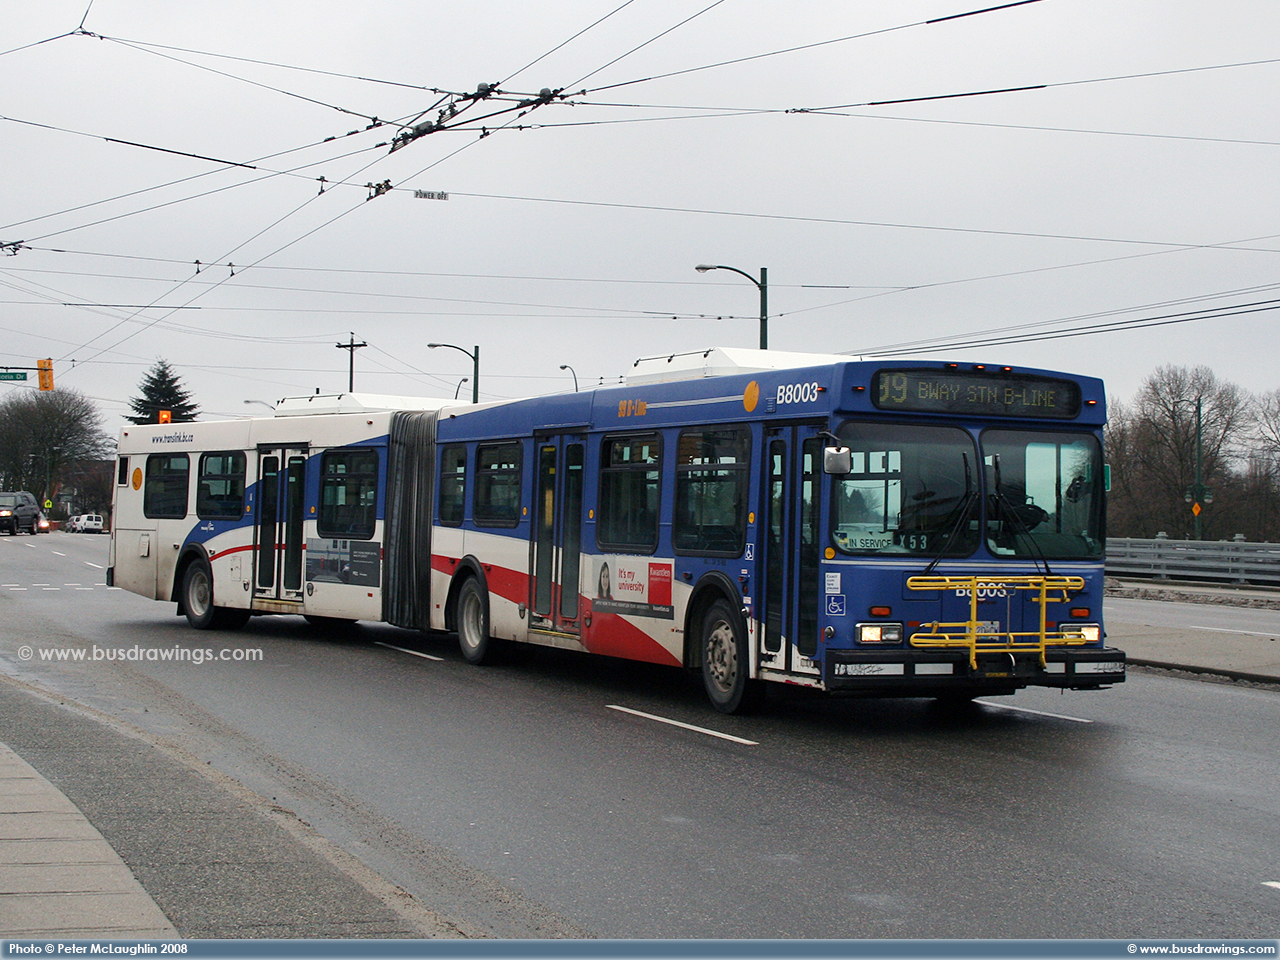 B8003 Heads To Broadway Station Start In Service As A Route 99 B Line Photos Captured By Peter McLaughlin On February 1 2008